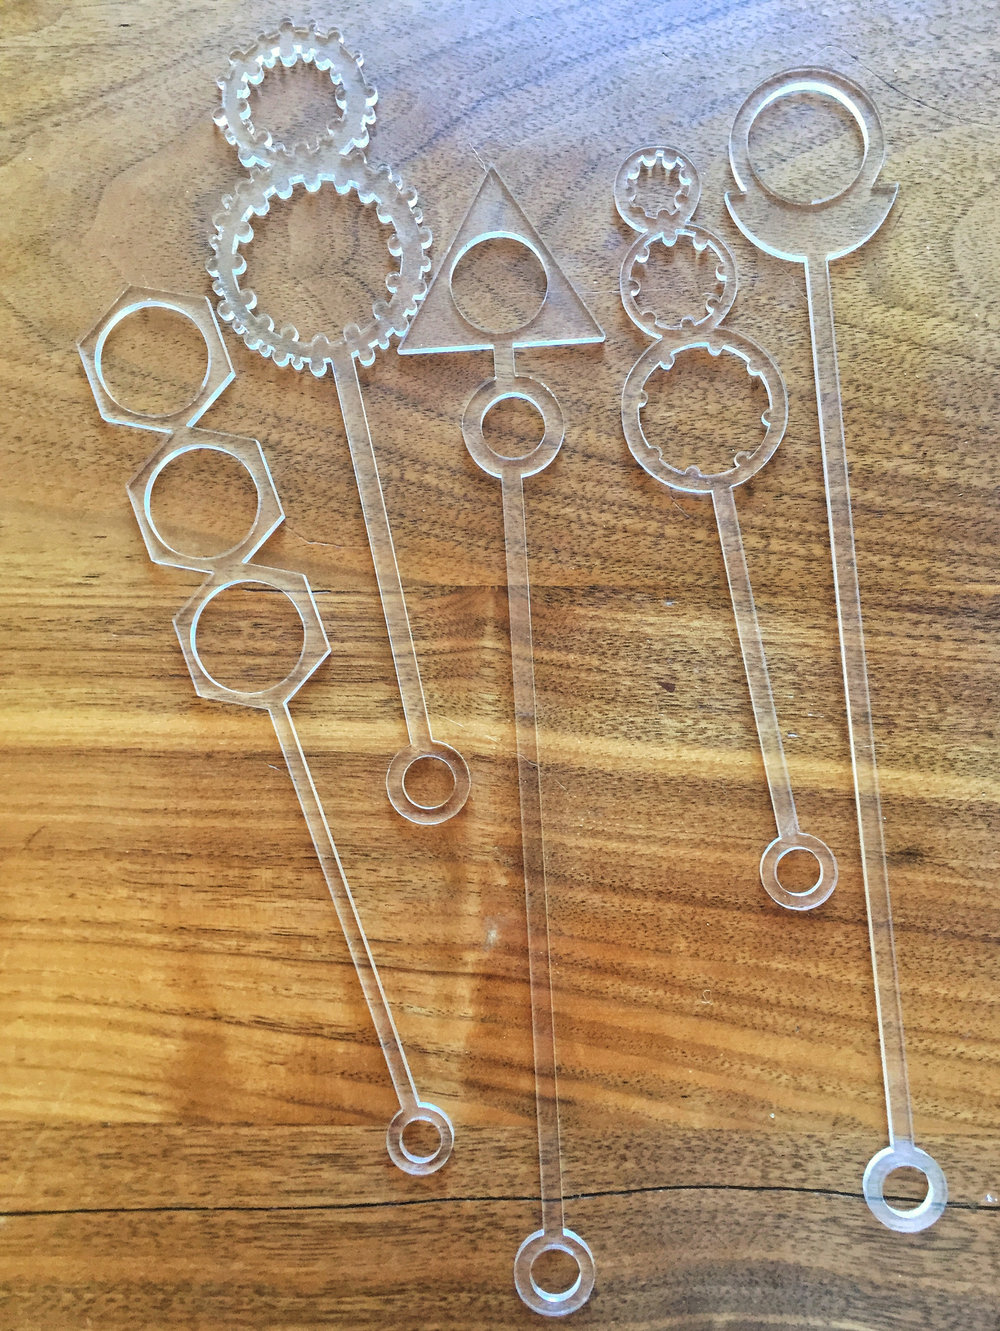 Bubble wands cut from clear acrylic